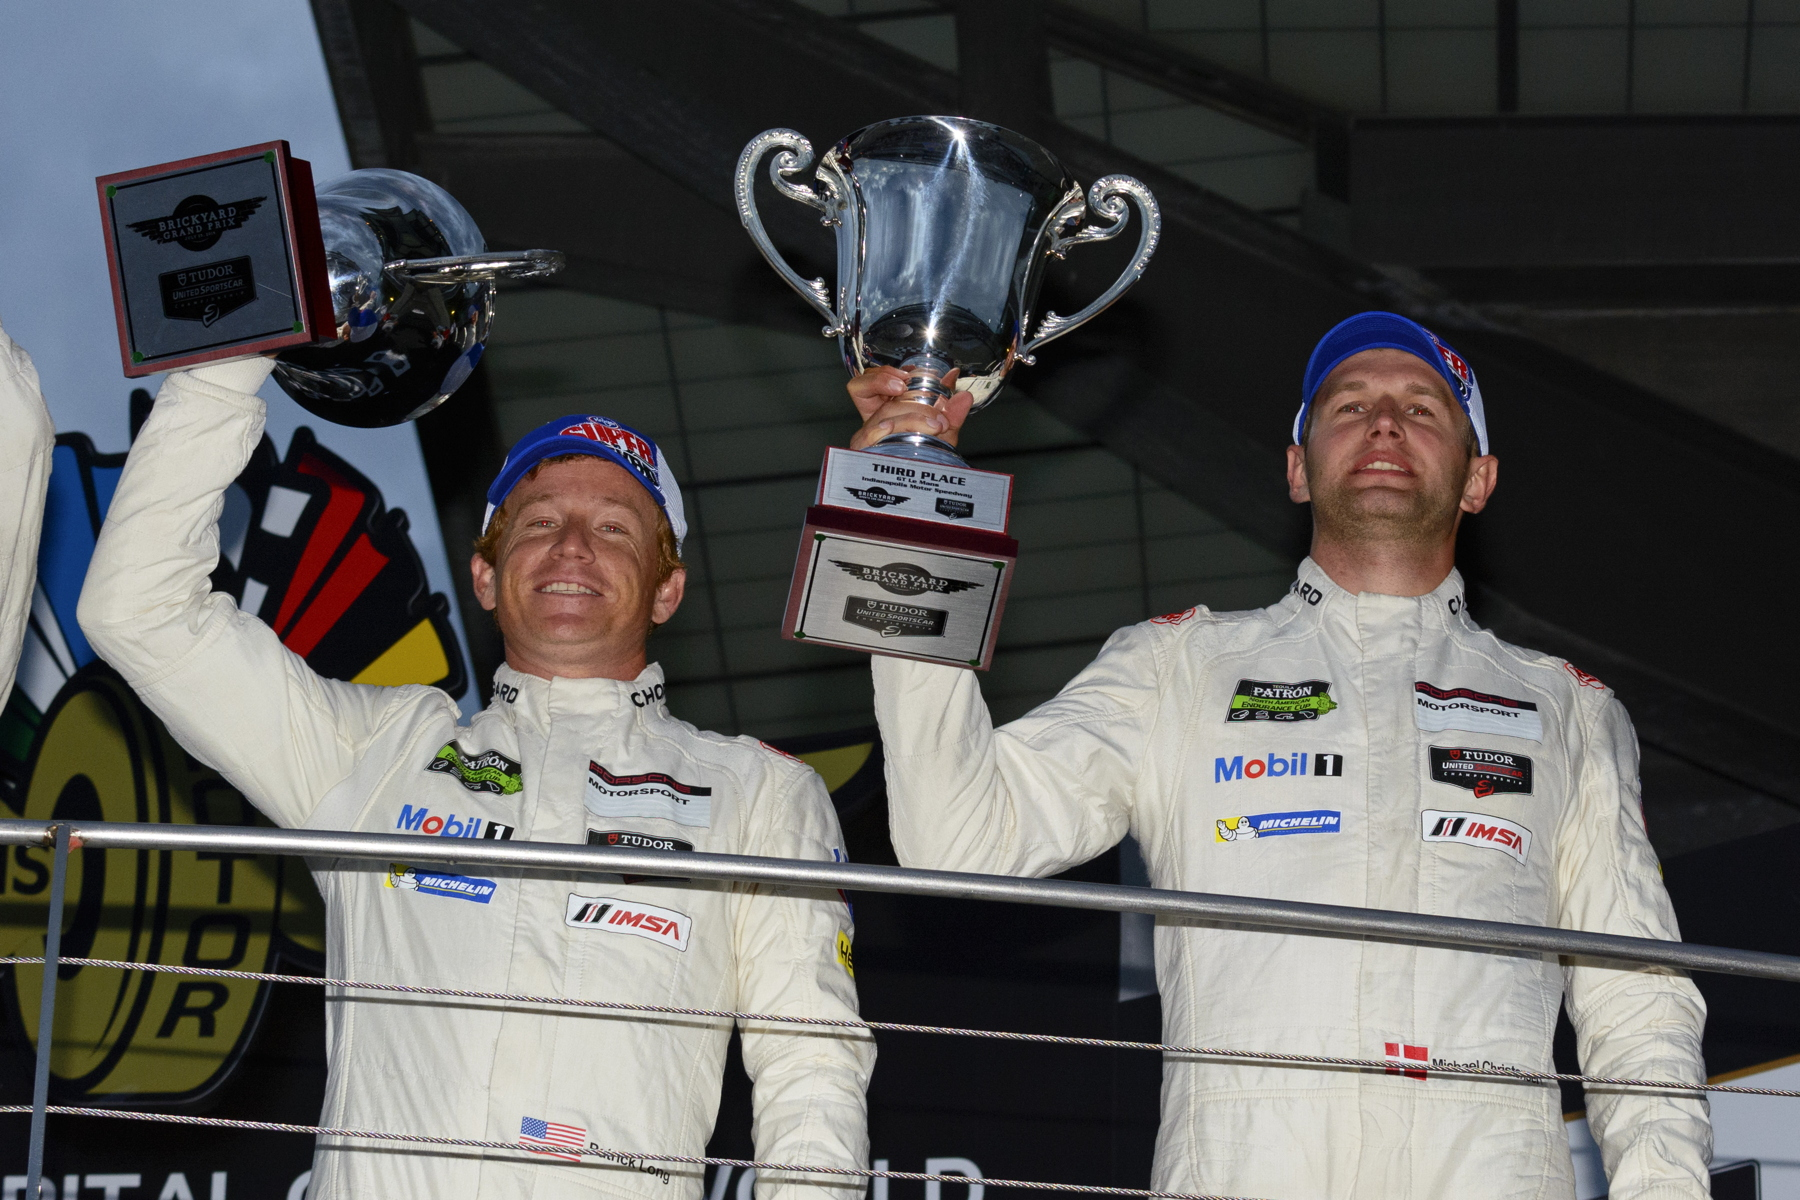 Indianapolis marked Patrick Long (left) and Michael Christensen's (right) first podium since their Sebring win.